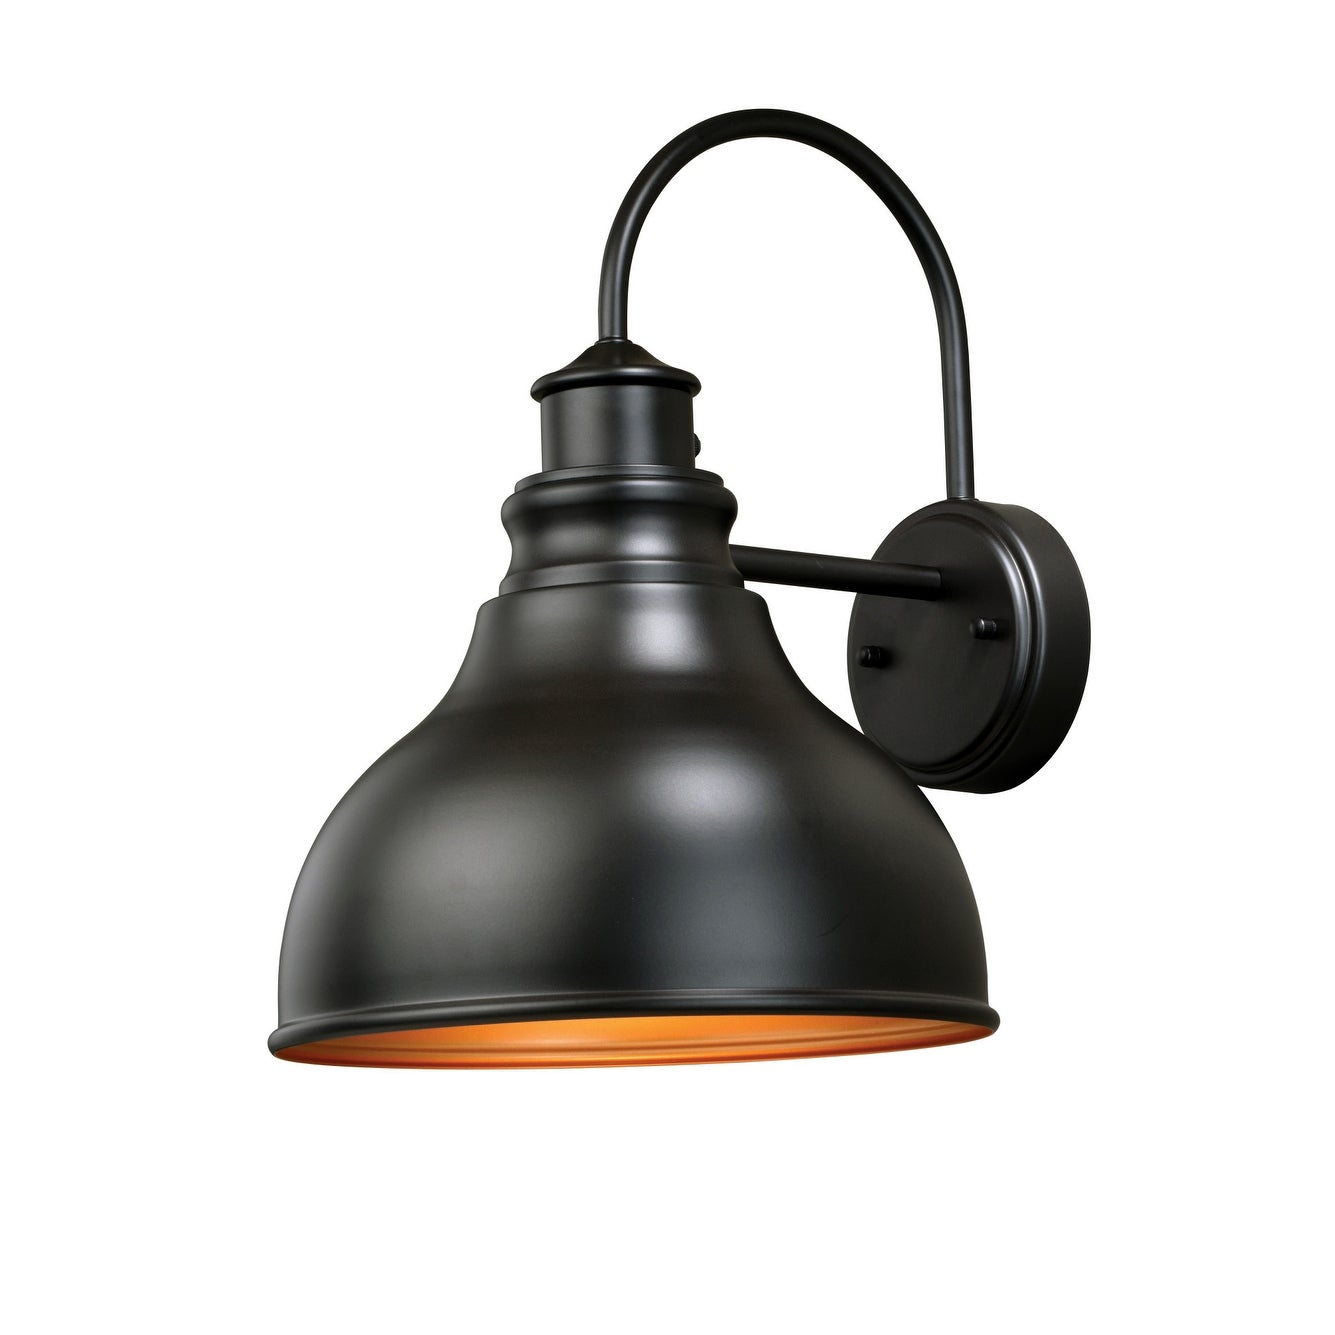 Vaxcel Lighting T0314 Delano